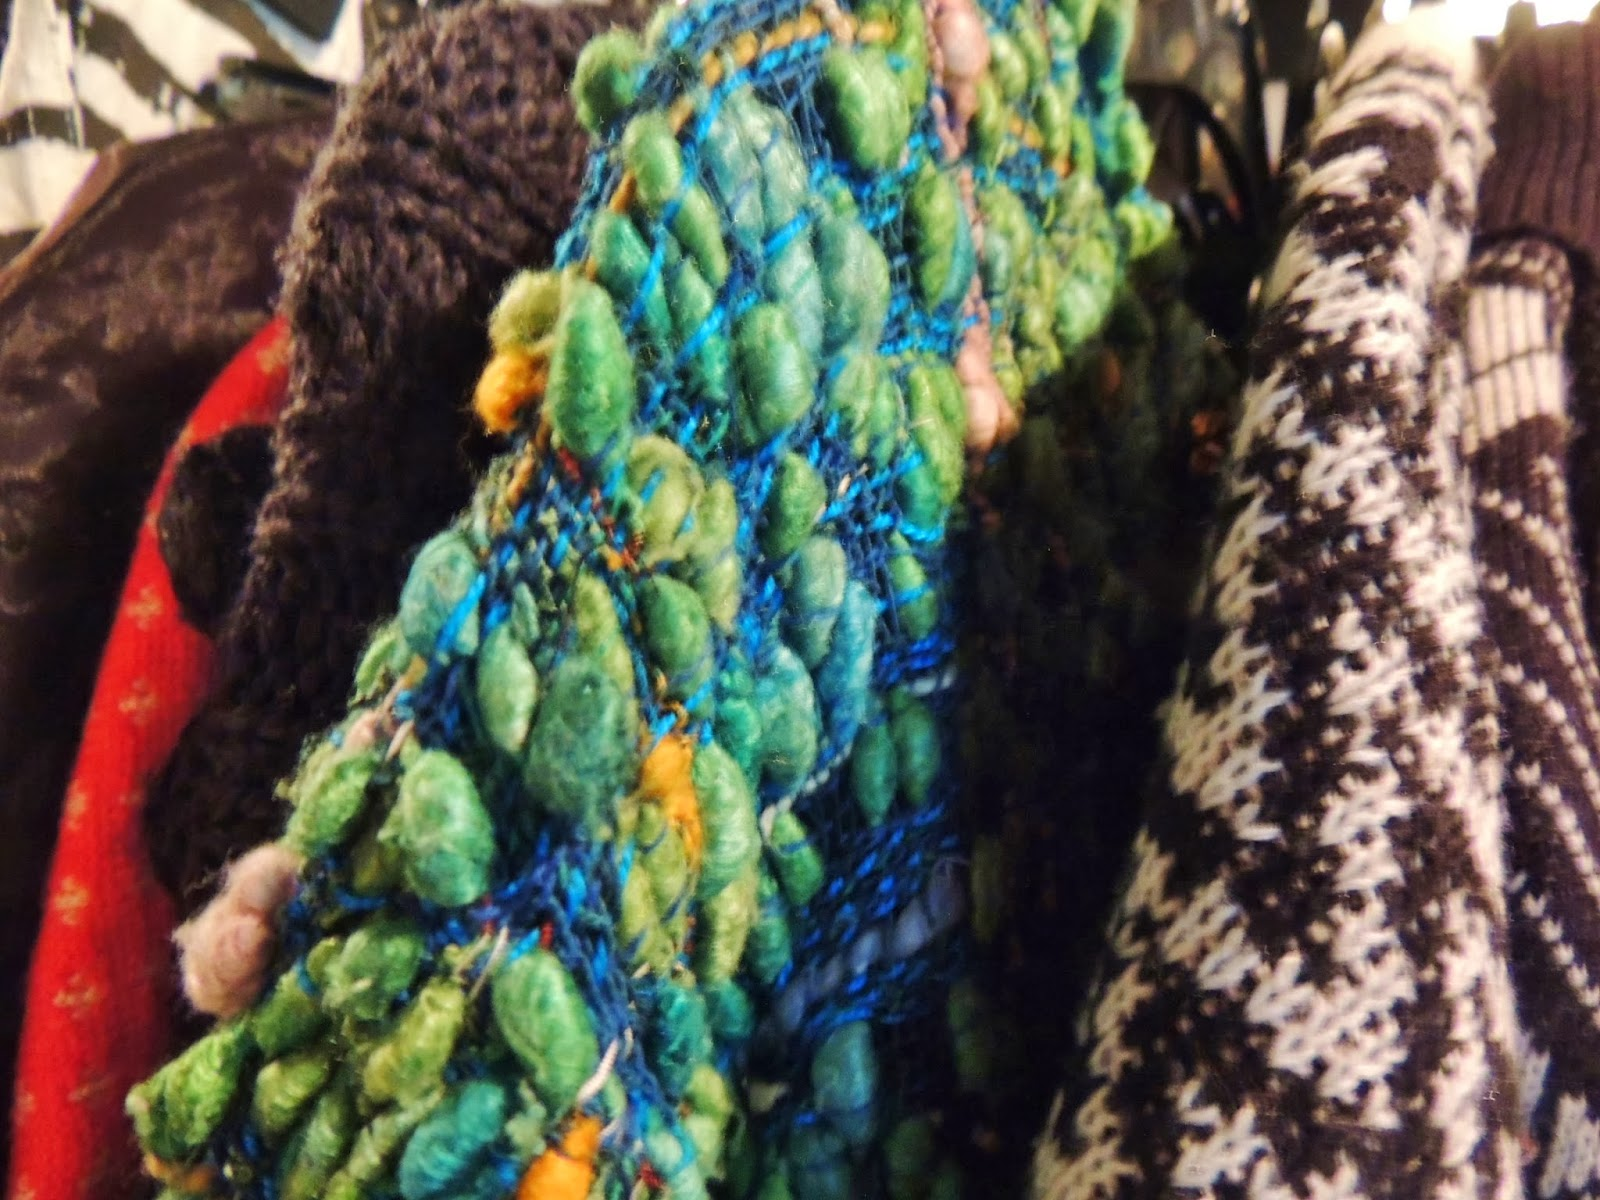 Close-up vintage knitwear